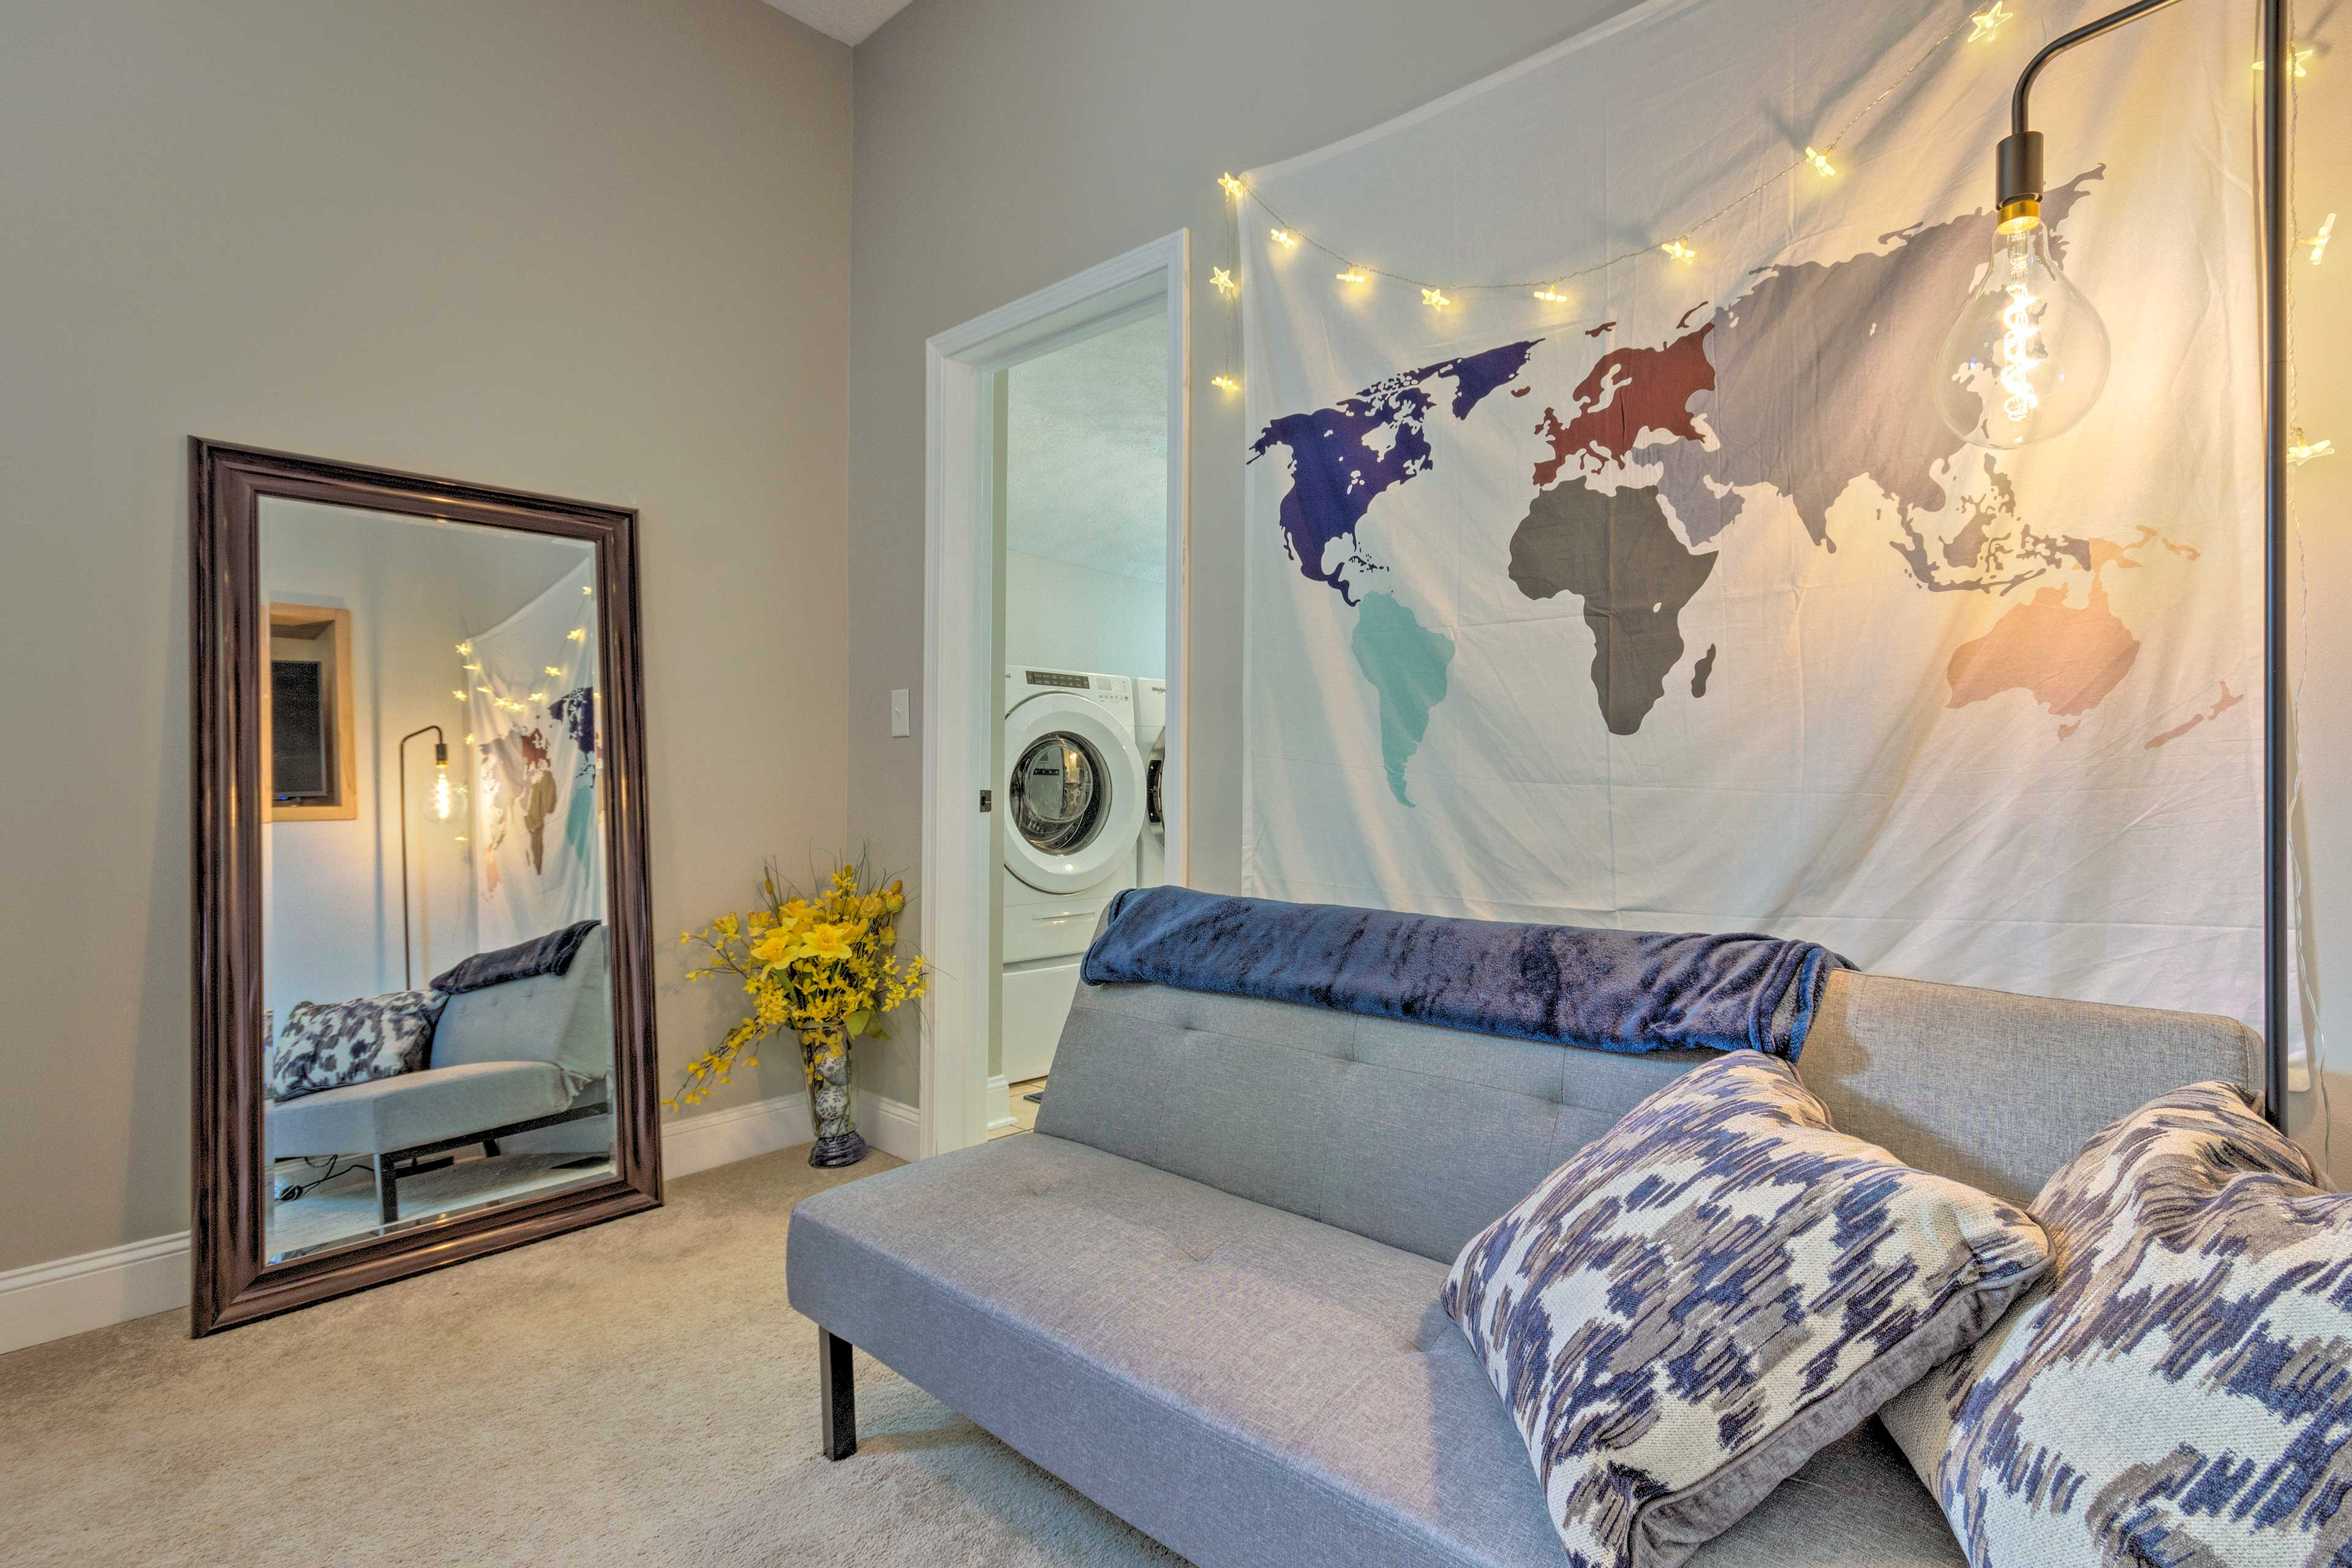 This 1-bedroom in-law suite sleeps up to 4 with a queen bed and futon.